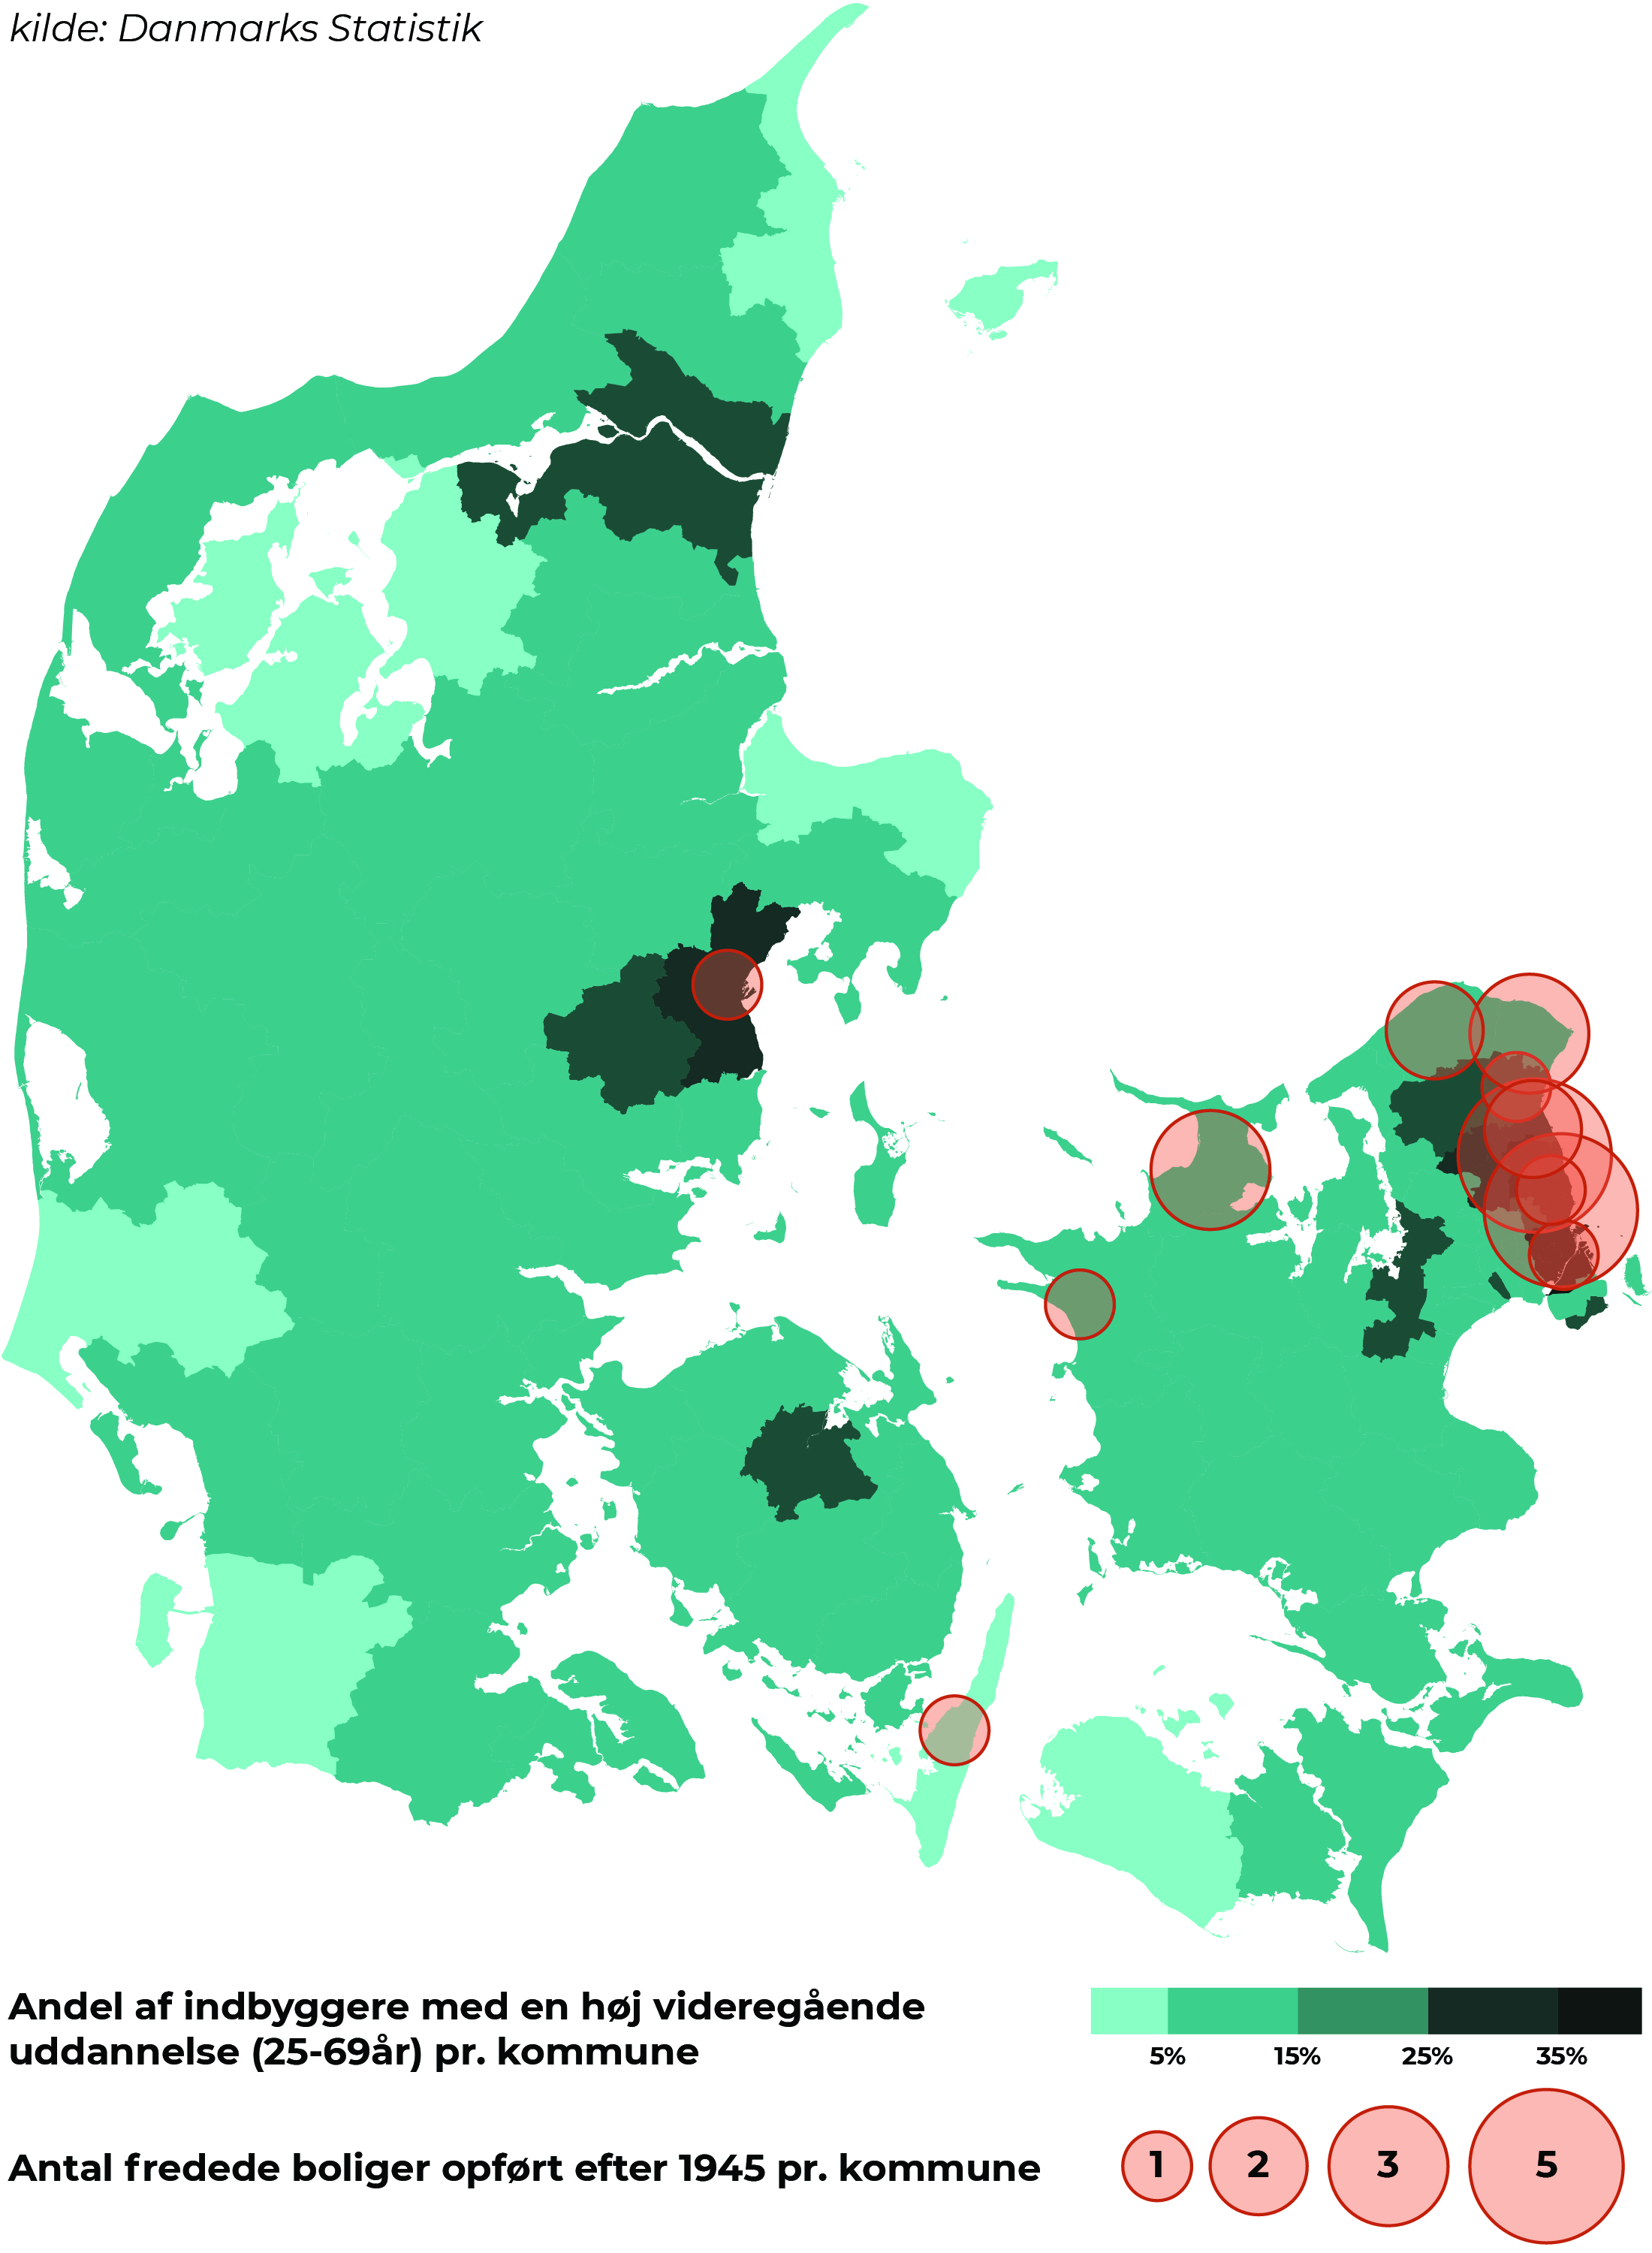 Map showing protected houses after 1945 made by Danmarks Statistik